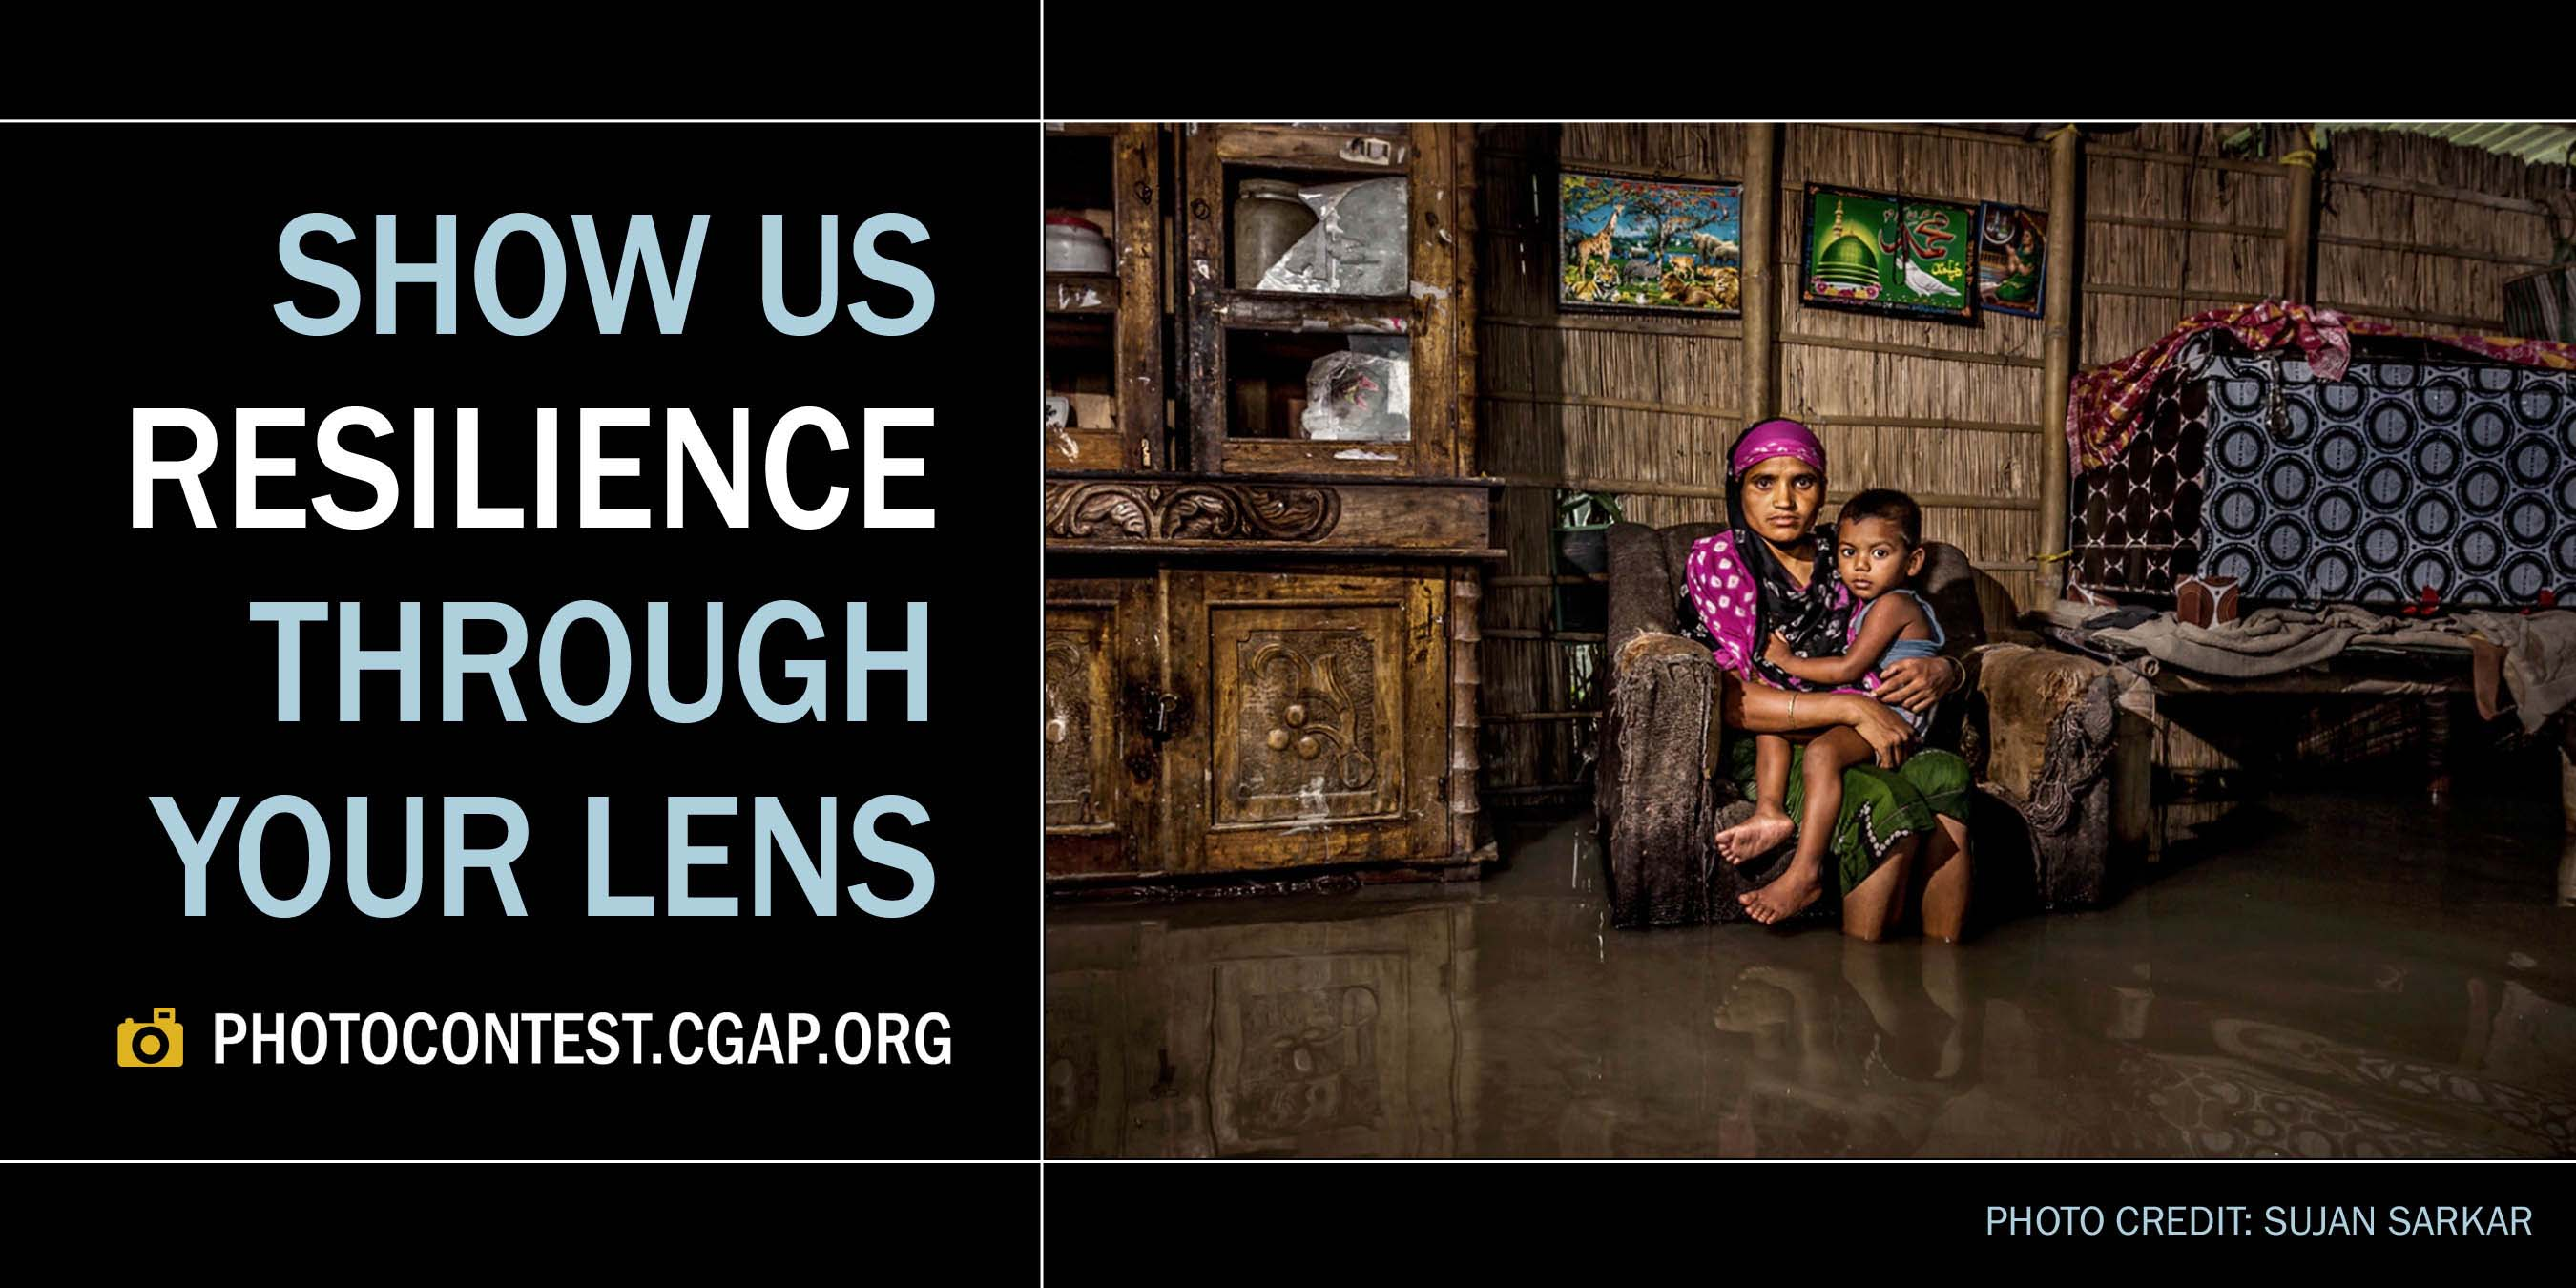 The 2017 CGAP Photo Contest is open for entries. (PHOTO CREDIT: SUJAN SARKAR)